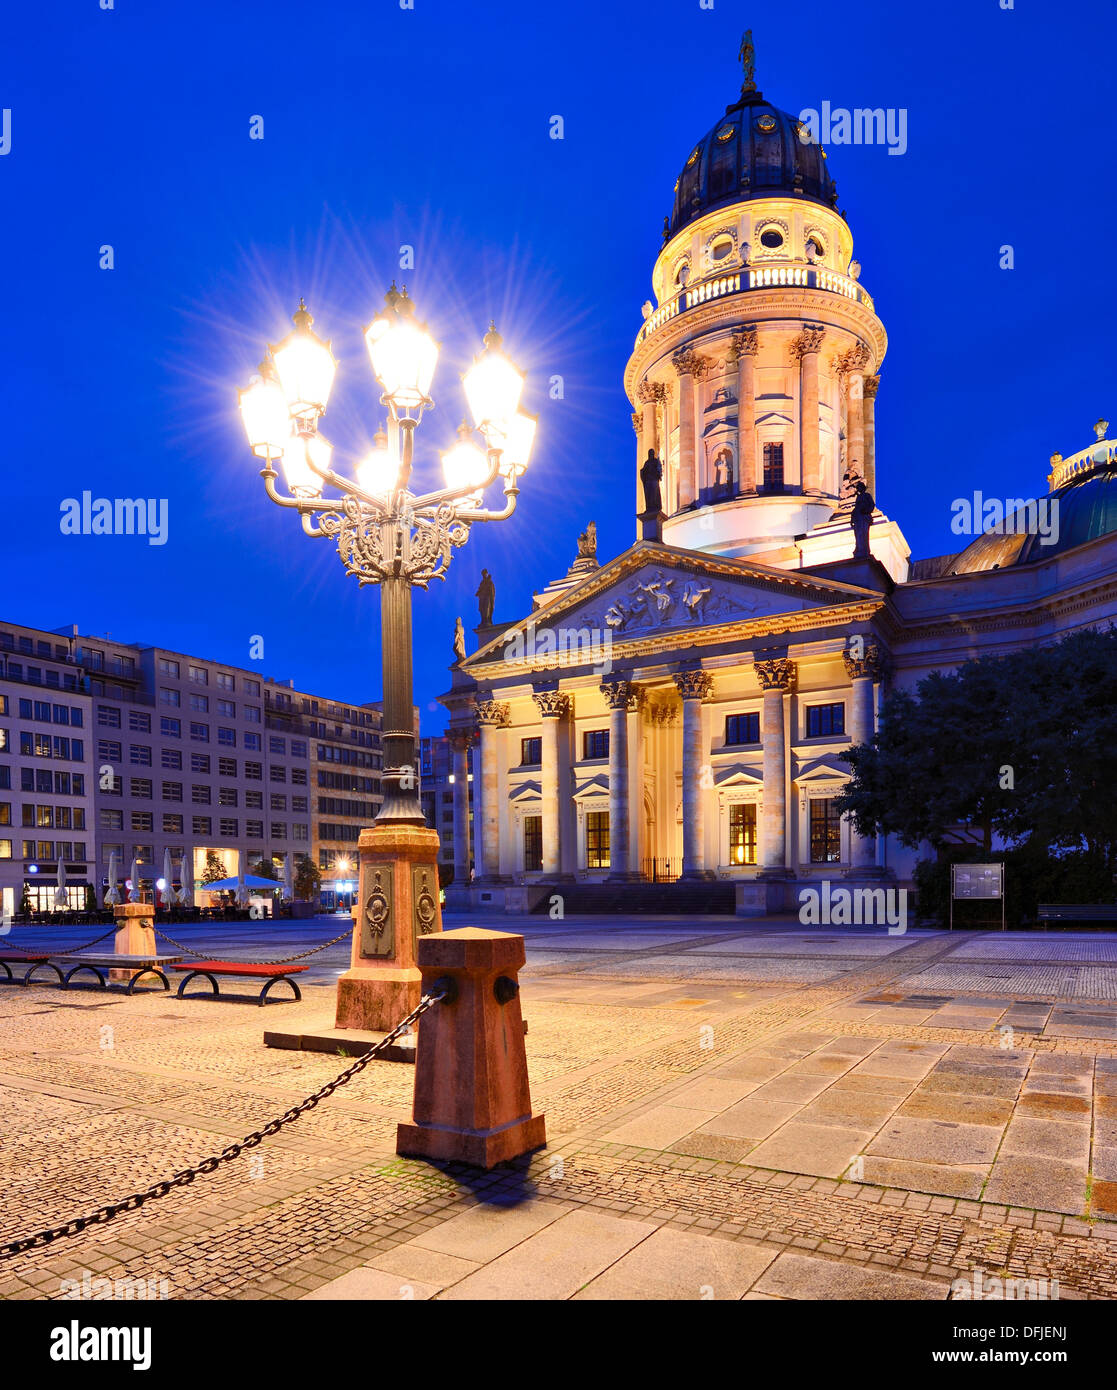 Historic Gendarmenmarkt Square in Berlin, Germany. Stock Photo